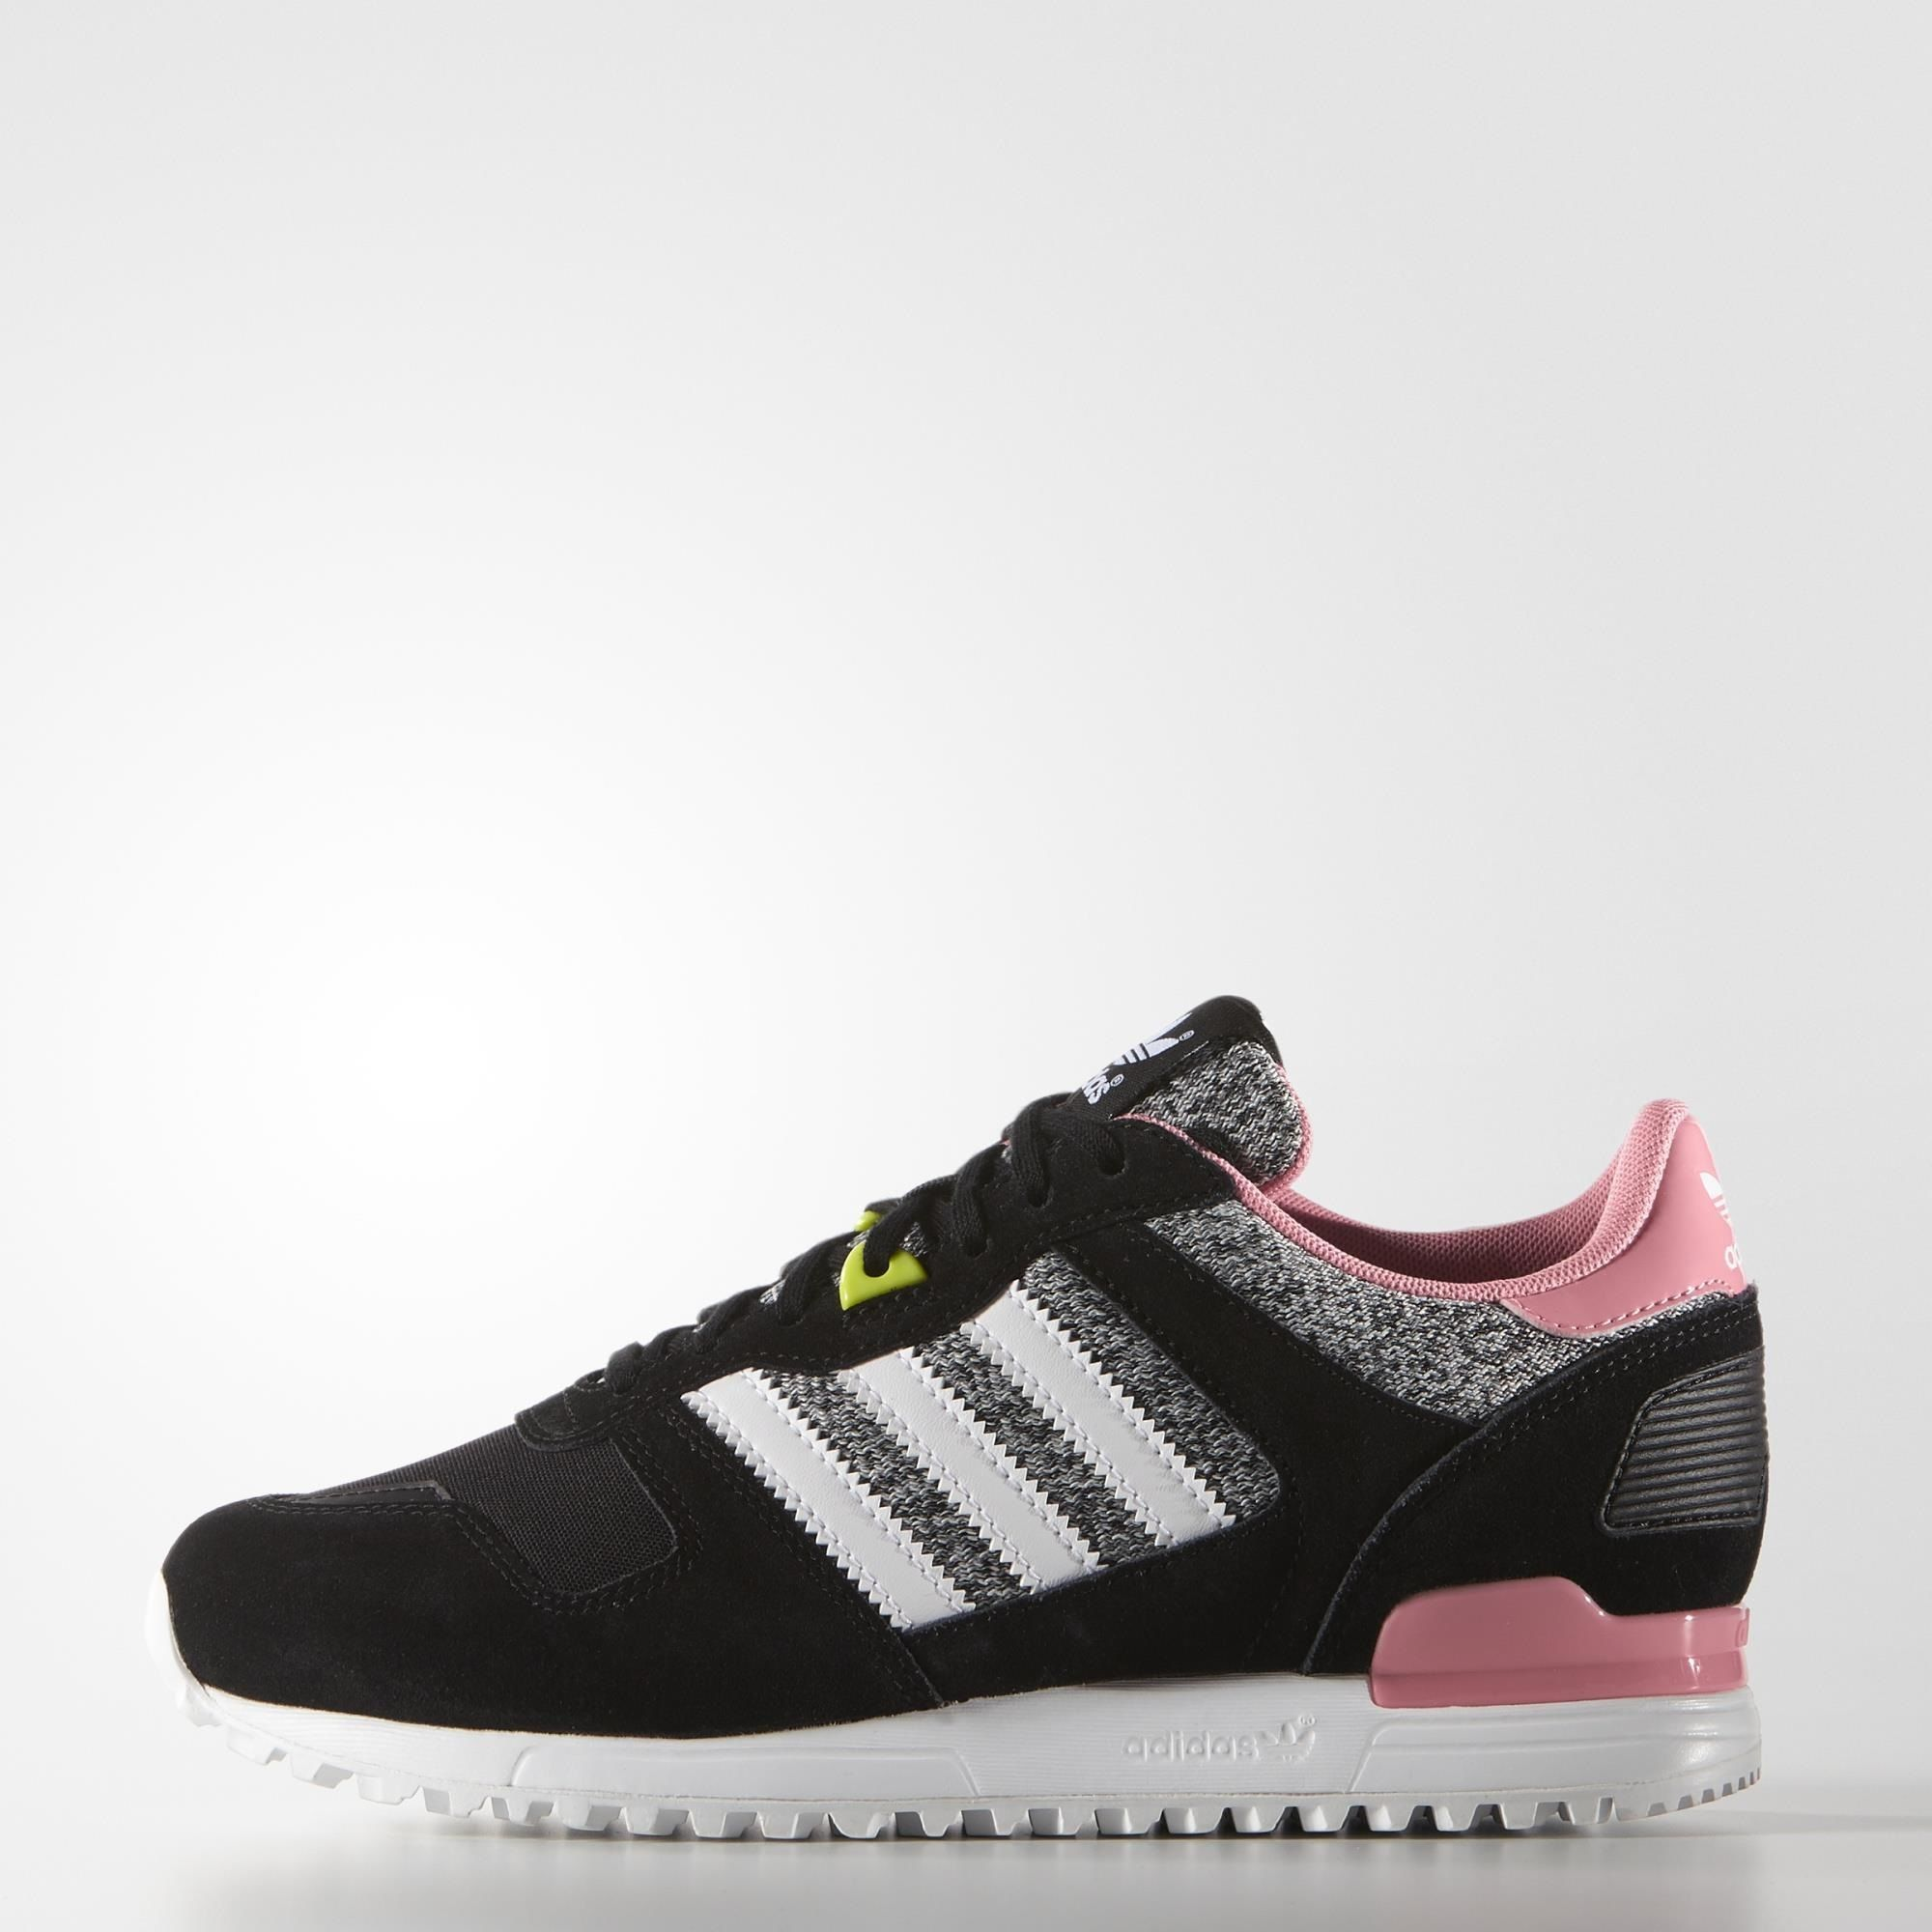 White Red Womens Grey Adidas Zx 700 Running Shoes Look